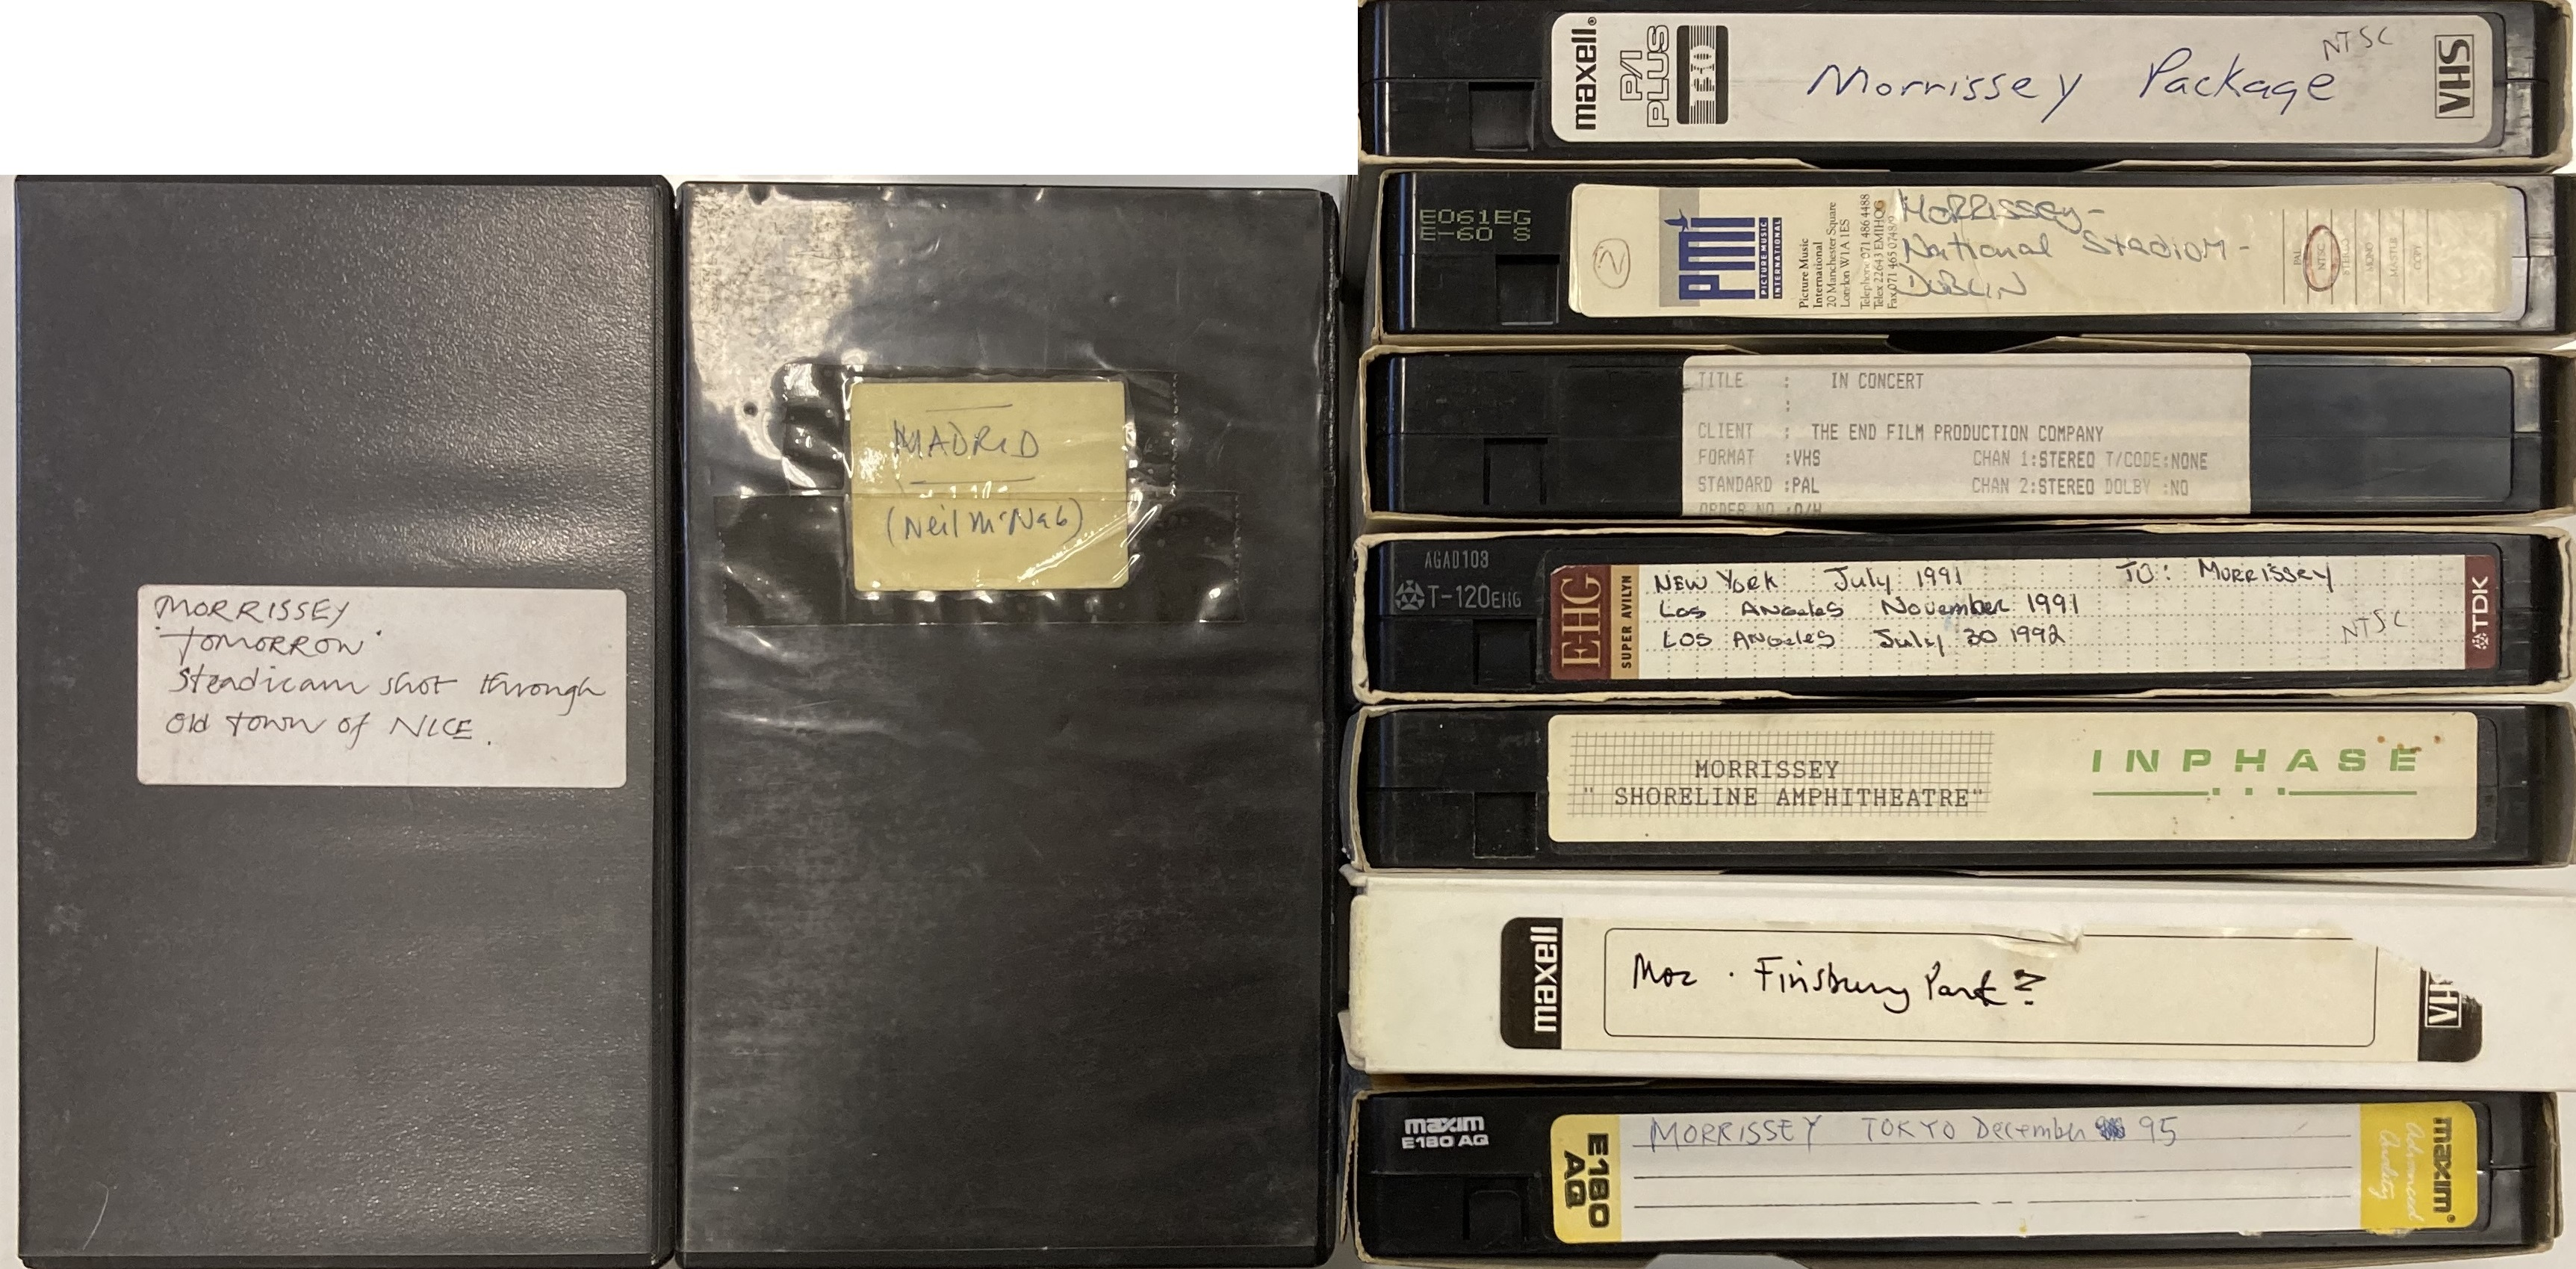 ROUGH TRADE ARCHIVE - MORRISSEY VHS TAPES Lot 455 (i).jpg